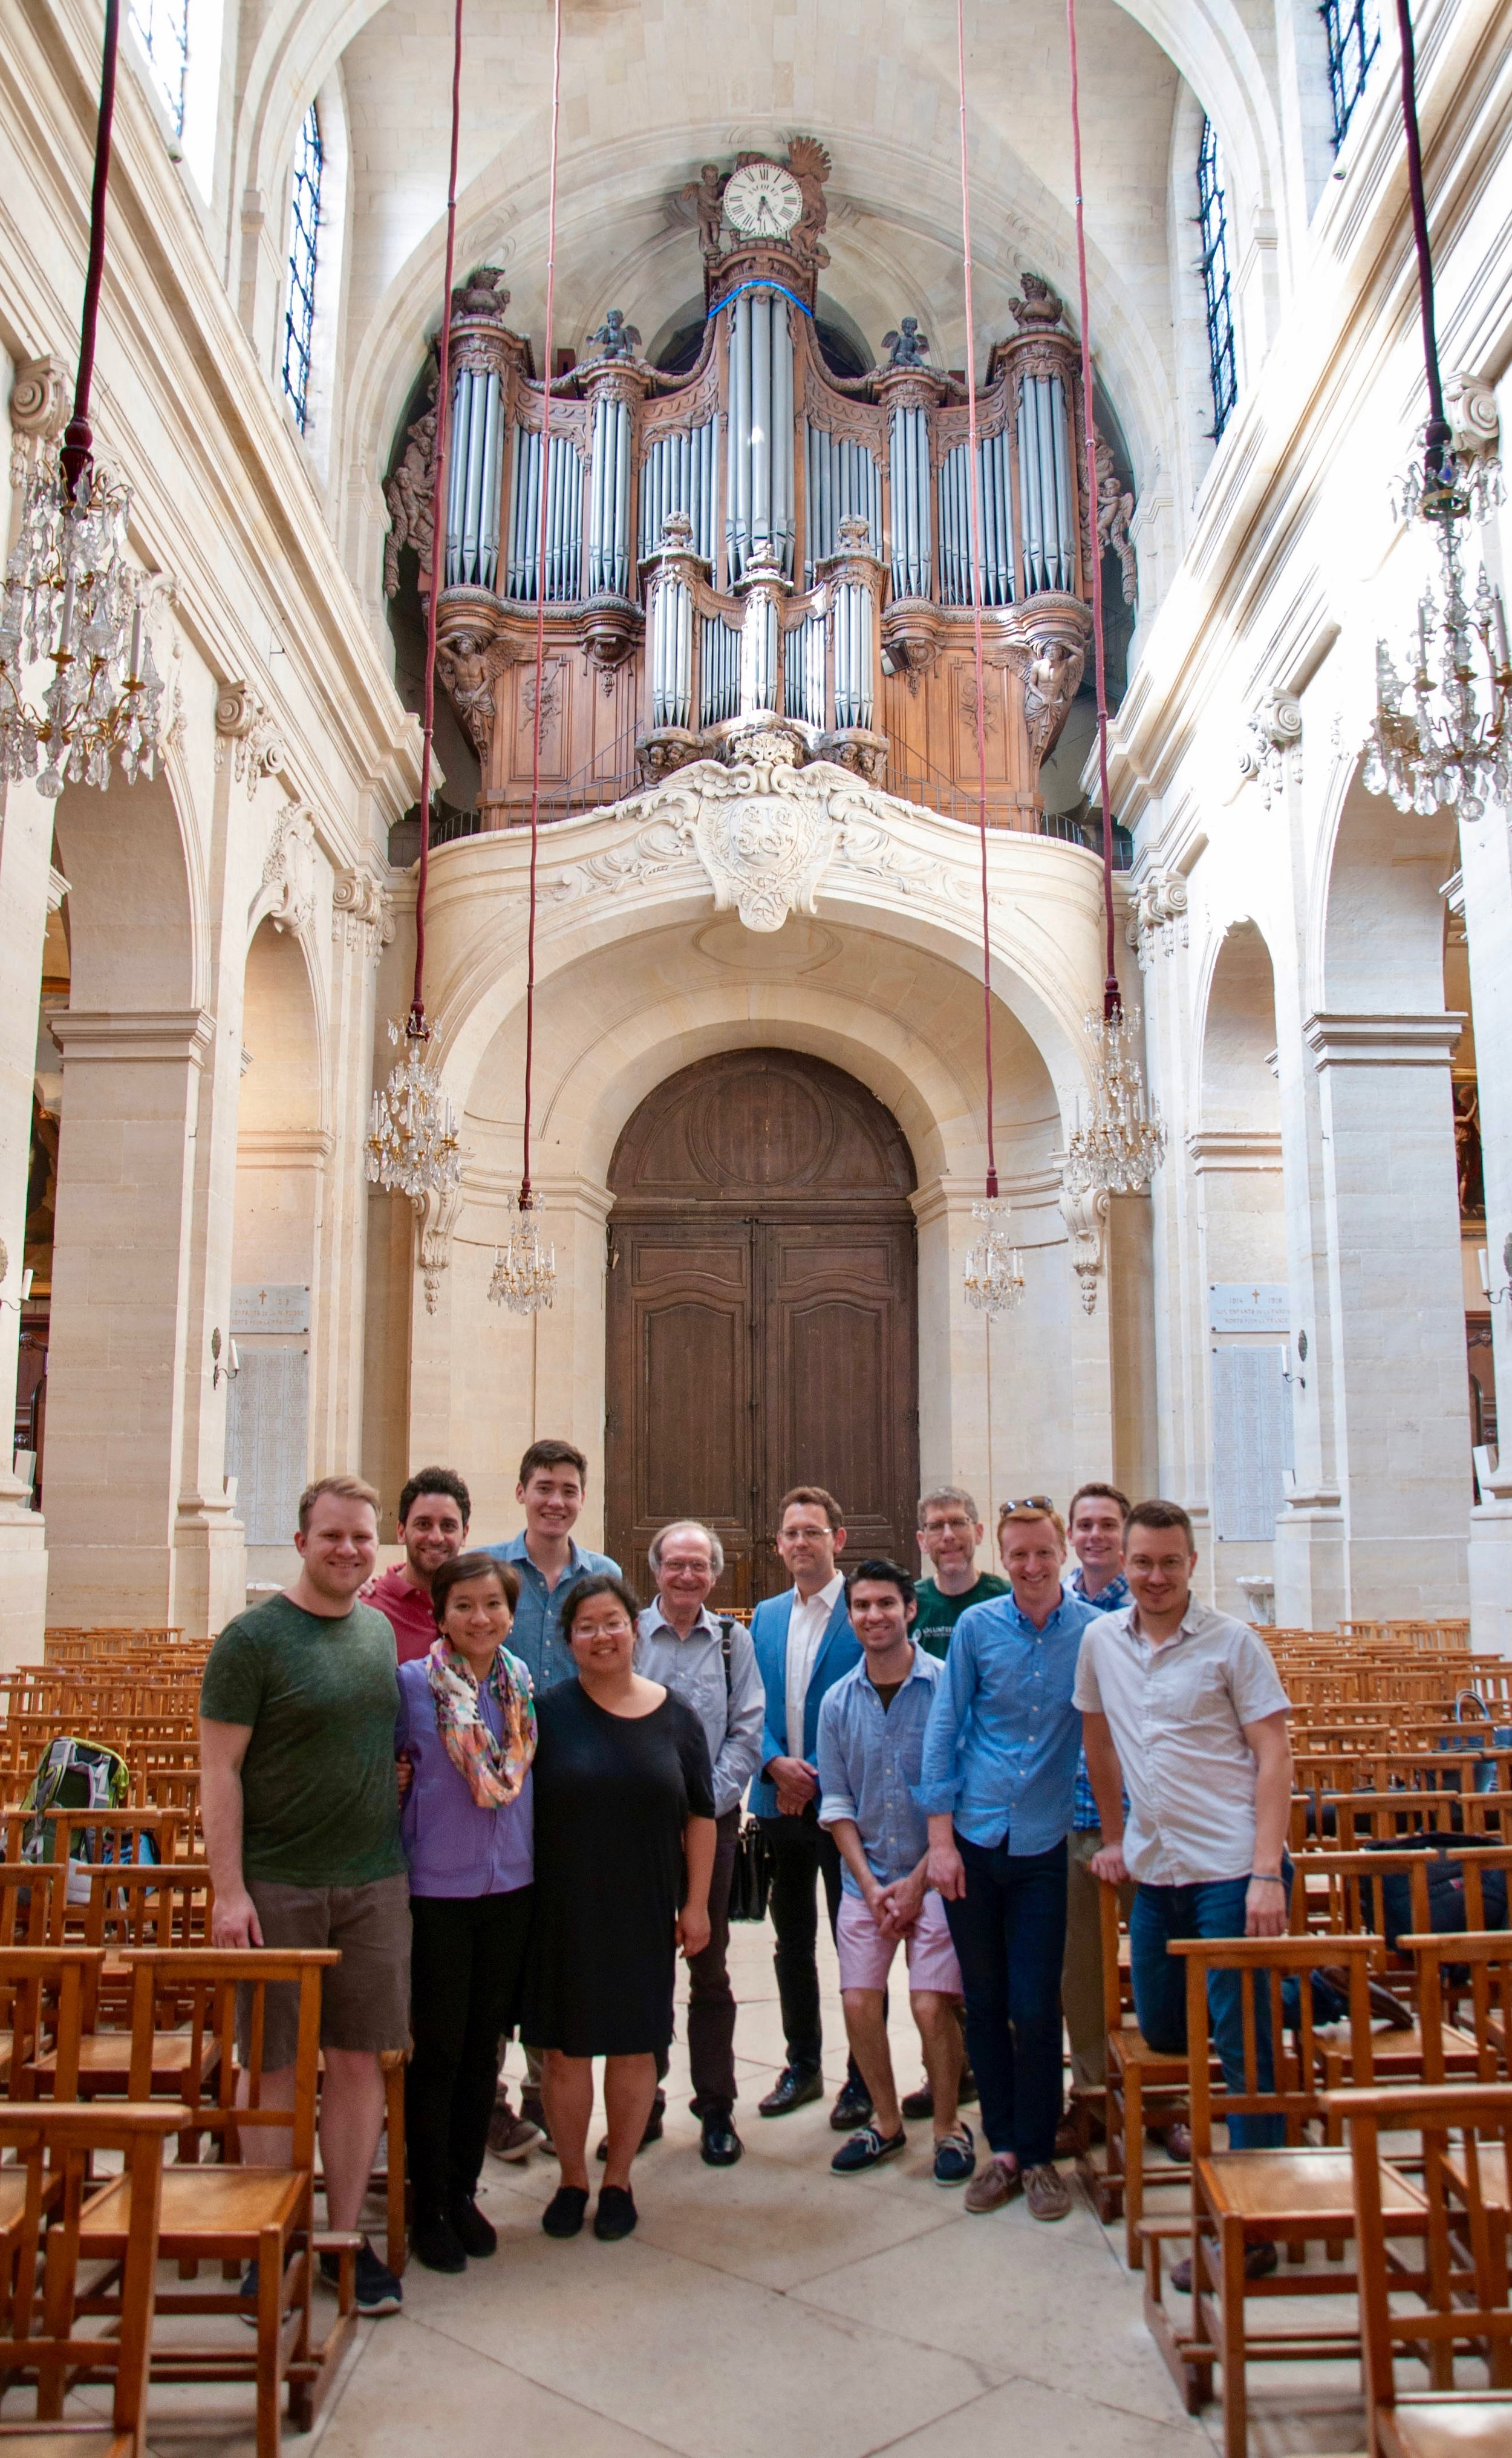 Members of the Boston Organ Studio with Jean-Baptiste Robin and Jean-Pierre Millioud at the Cathédrale of Saint Louis in Versailles